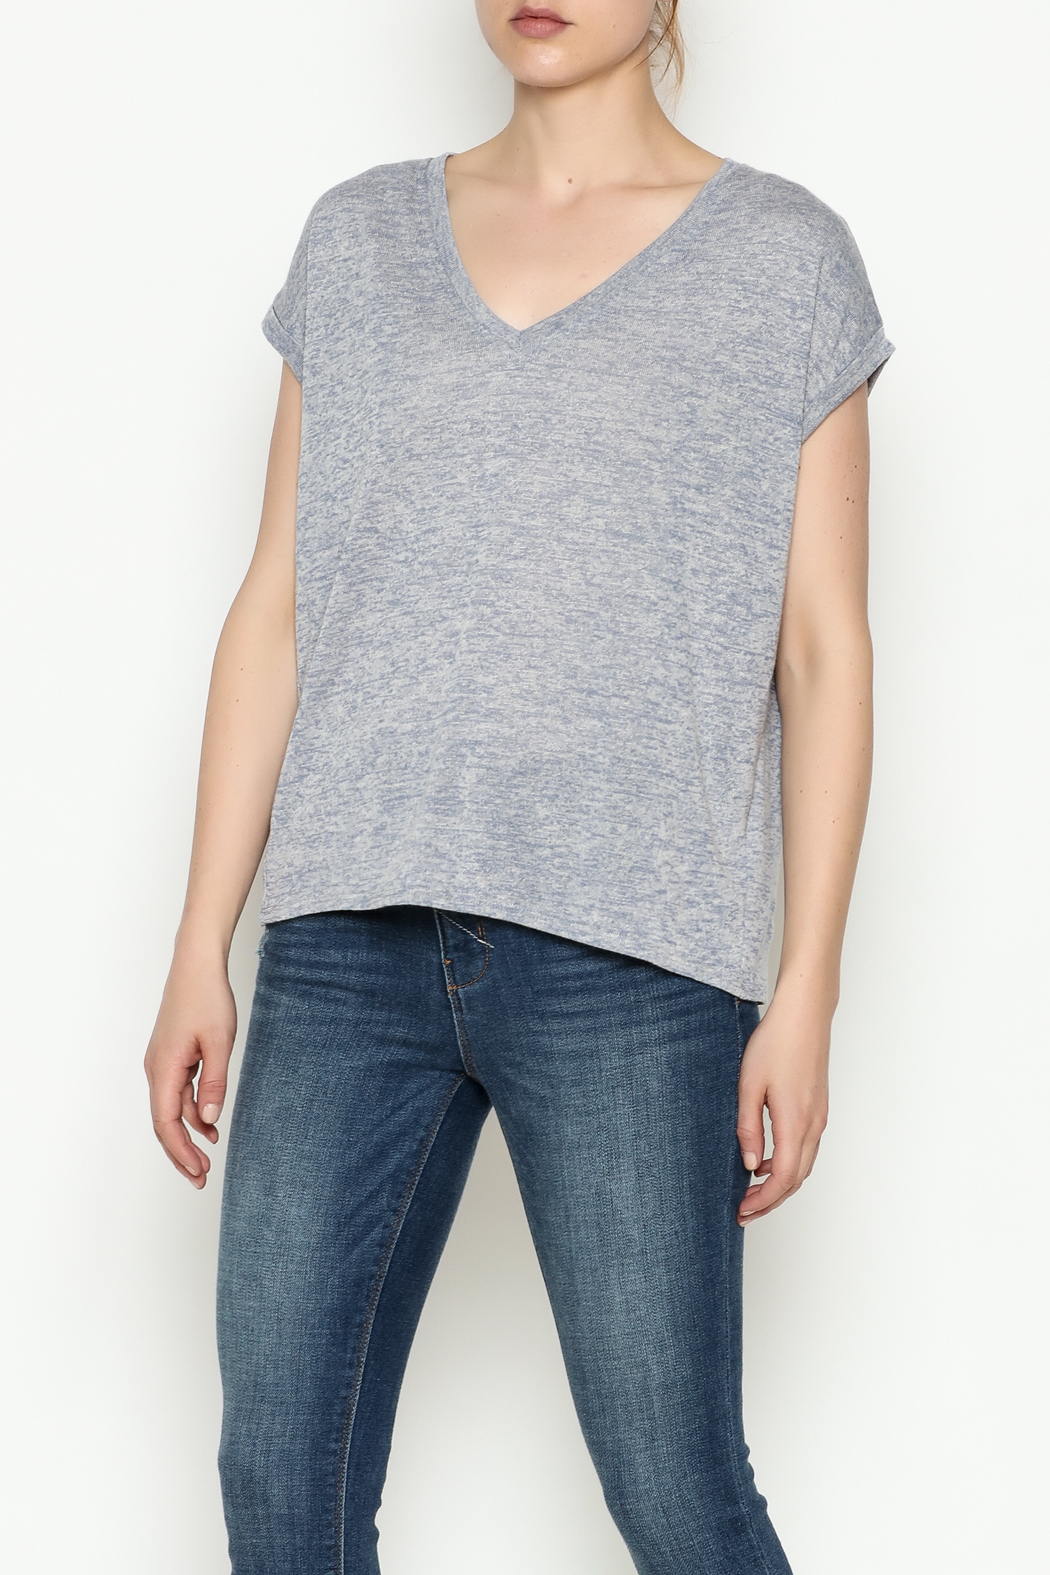 Gentle Fawn Boyfriend V Neck Tee - Front Cropped Image